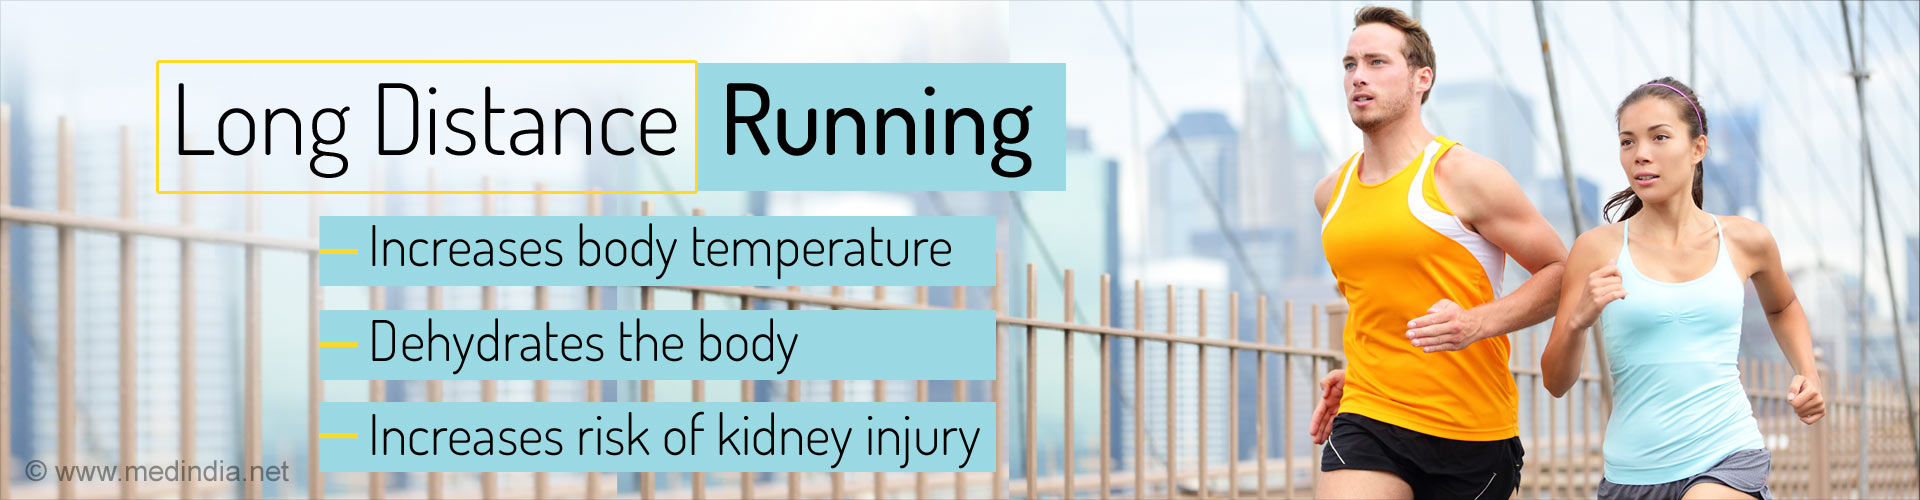 Marathon Runners Might Have Risk of Kidney Injury